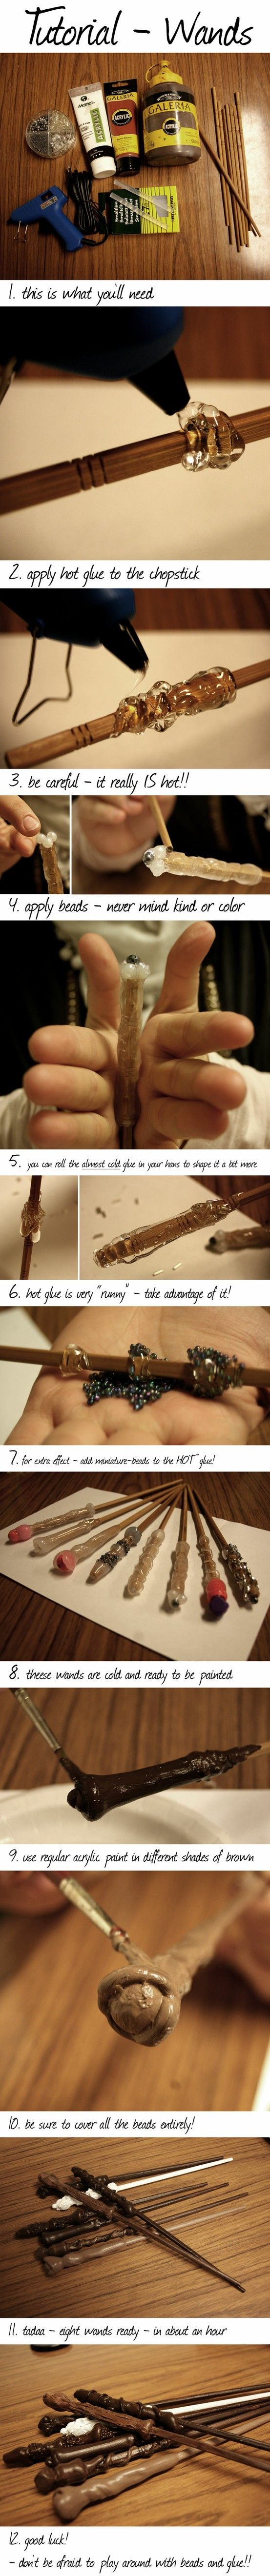 DIY Harry Potter Wands: Inspiration for Pinterest Saturday! August 2 @ 11AM at Sherman Township Library. Call ahead to RSVP so we can be sure to have enough supplies.